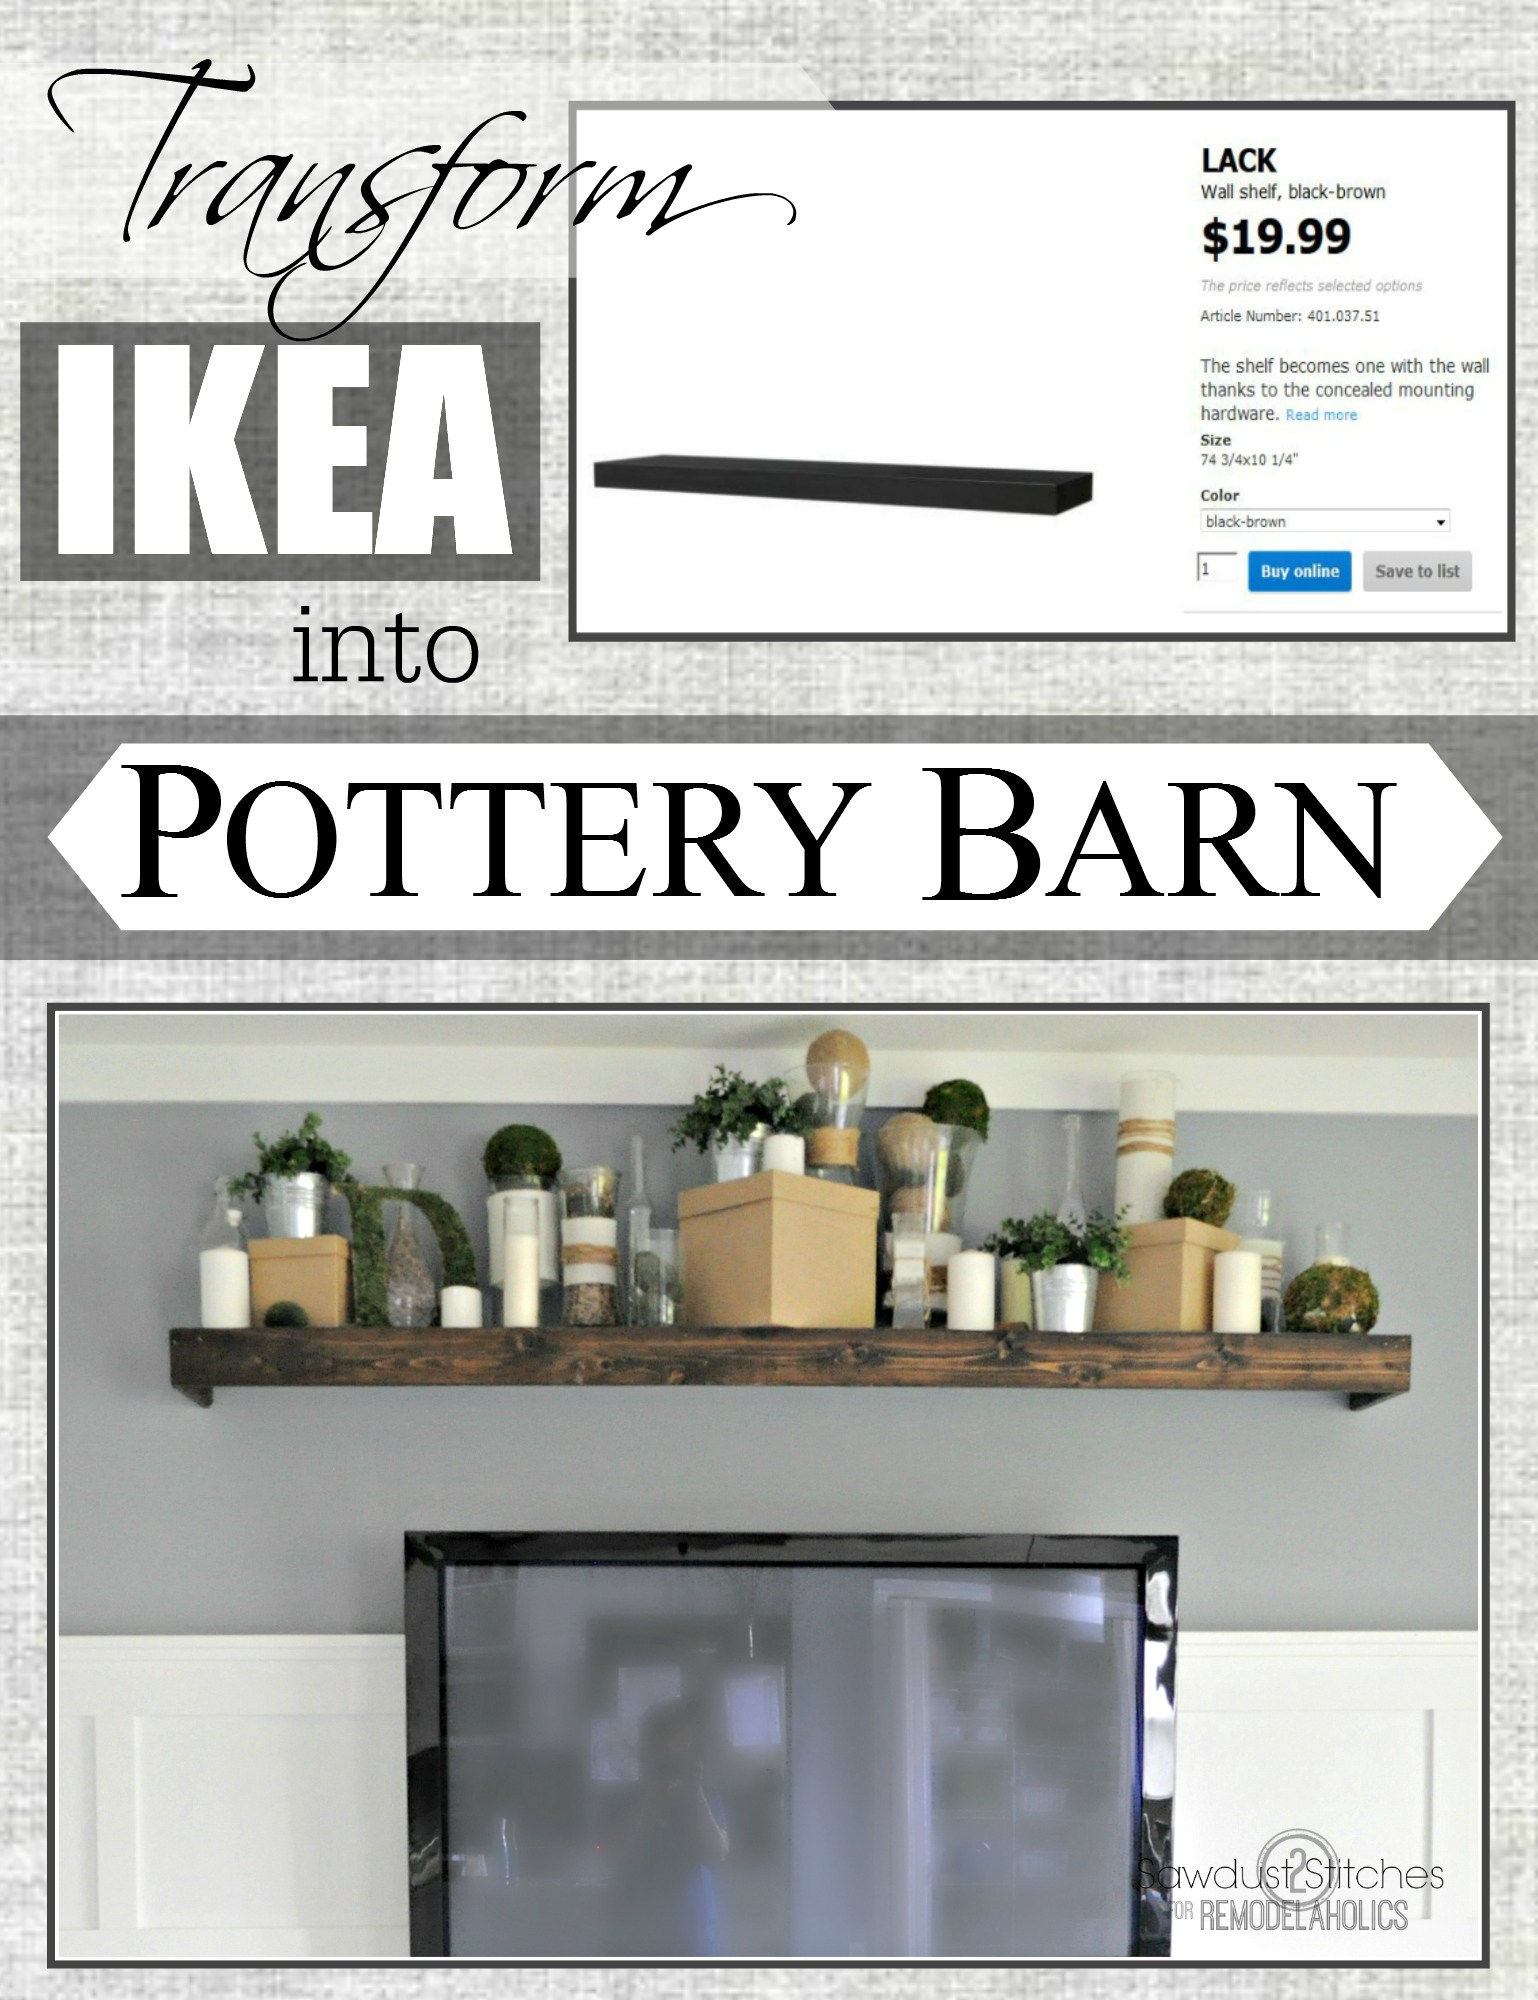 remodelaholic turn ikea shelf into pottery barn ledge makeover floating shelves installation instructions easily knock off ikeahack outdoor kitchen cart styling open tray